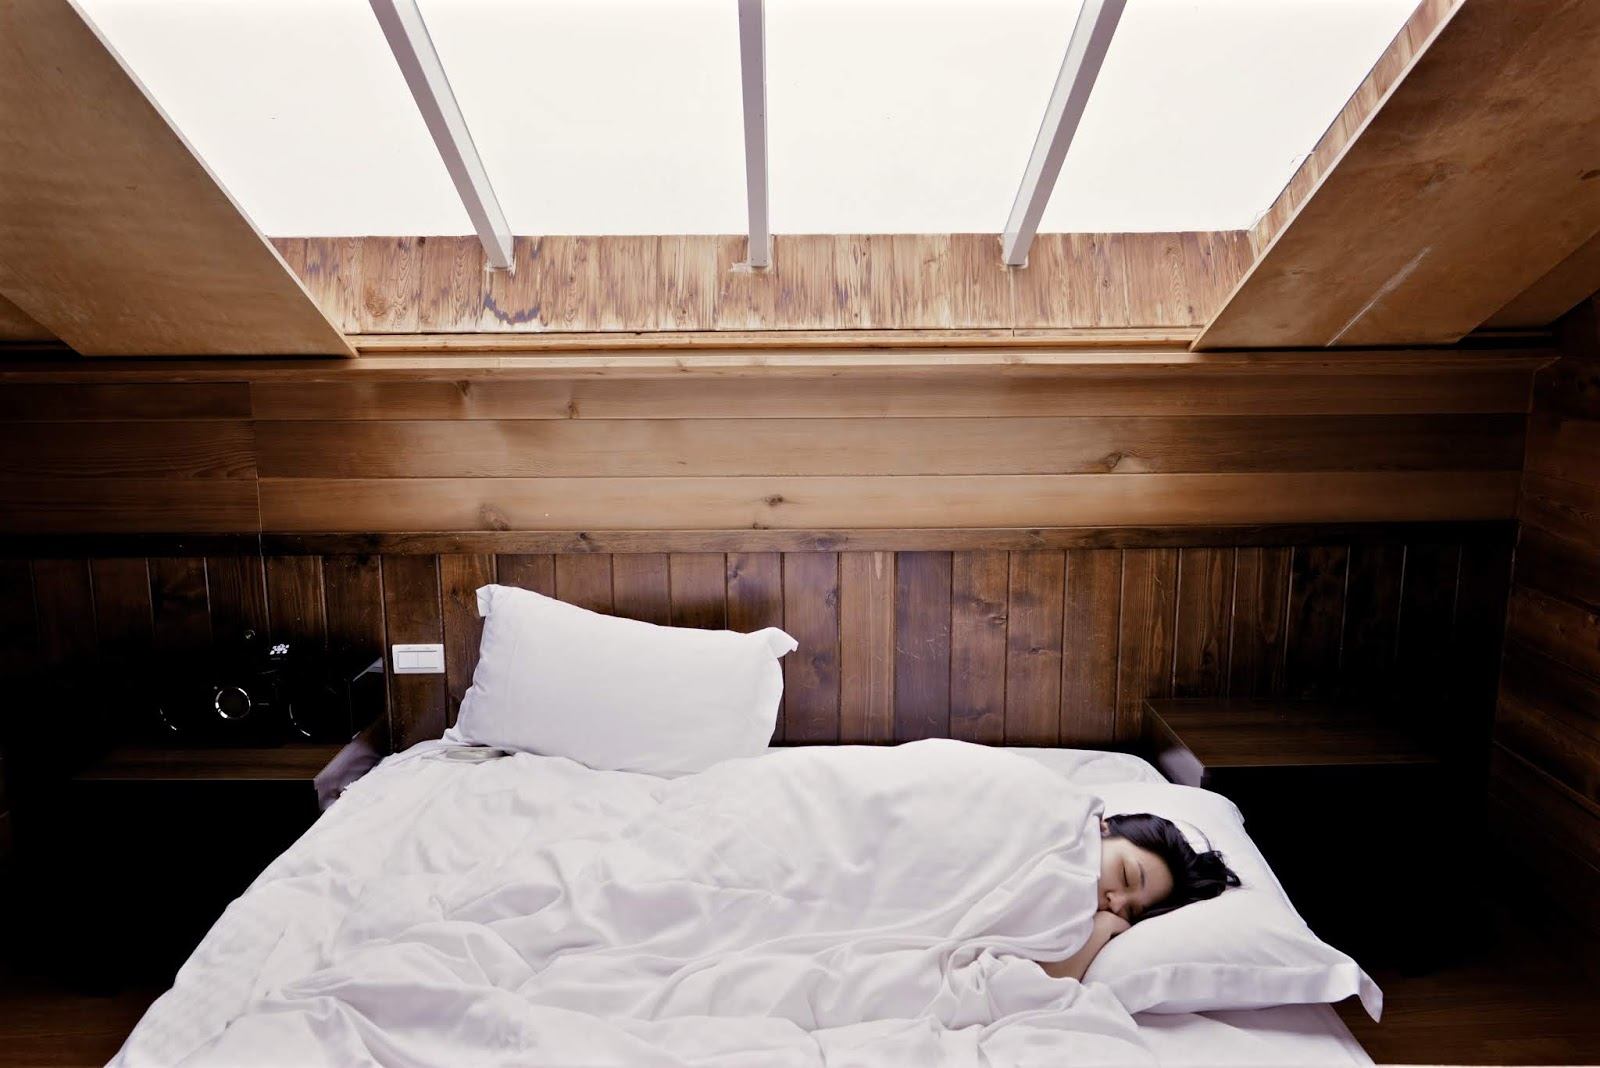 Sleep Disorders and Healthy Aging